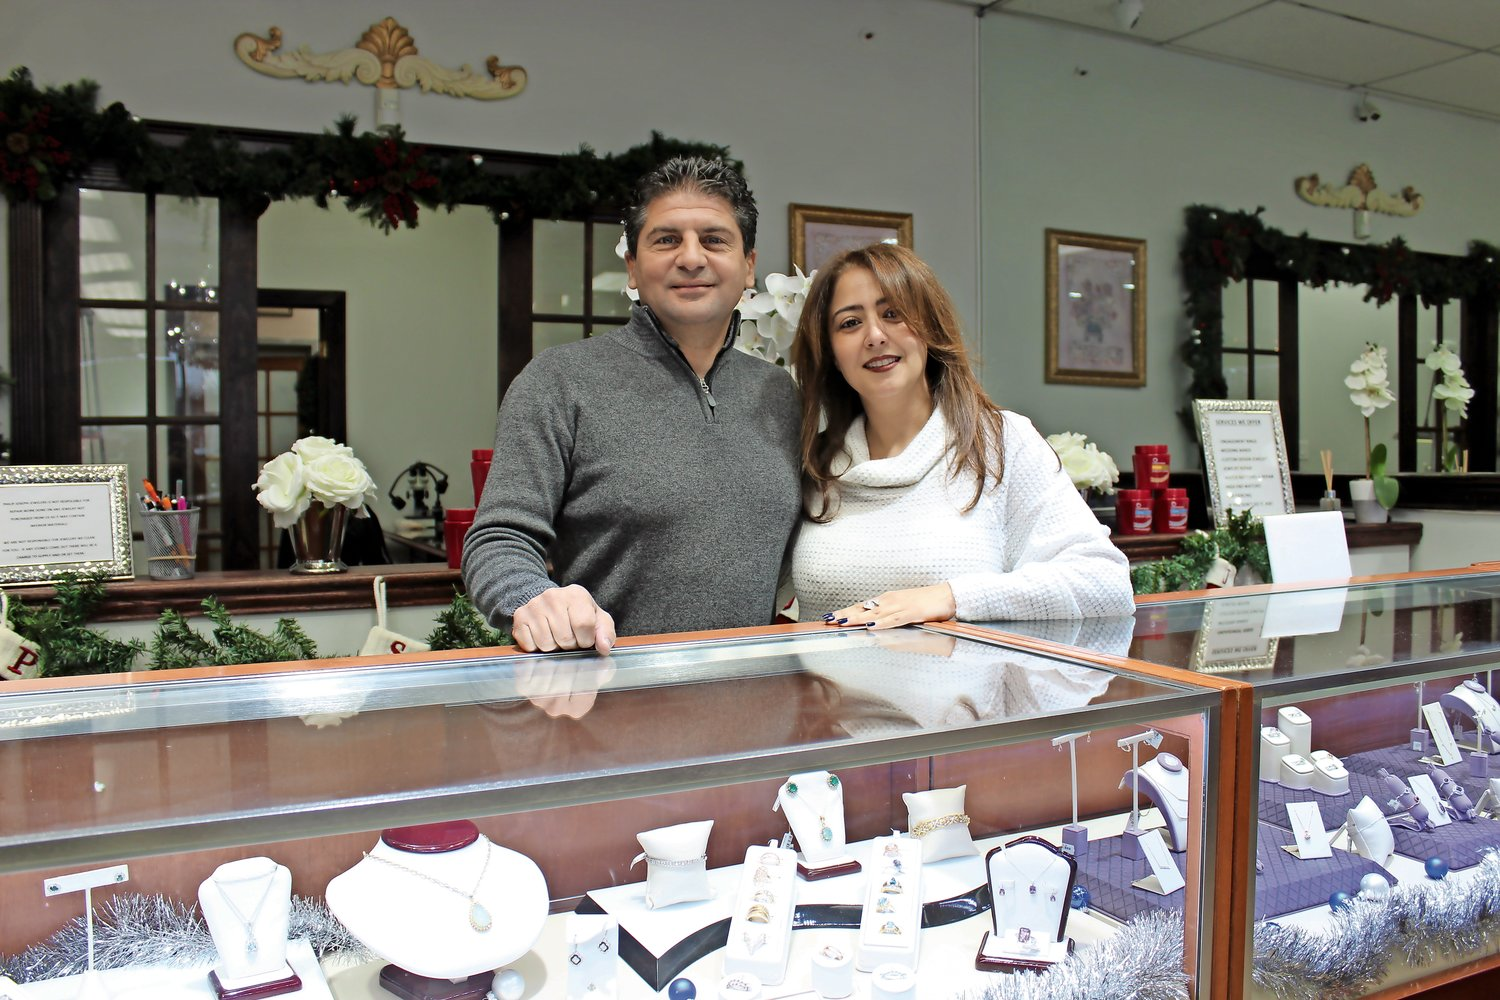 Phil Tavella and Neda Farahmanda, of Philip Joseph Jewelers, offer services that Amazon does not.